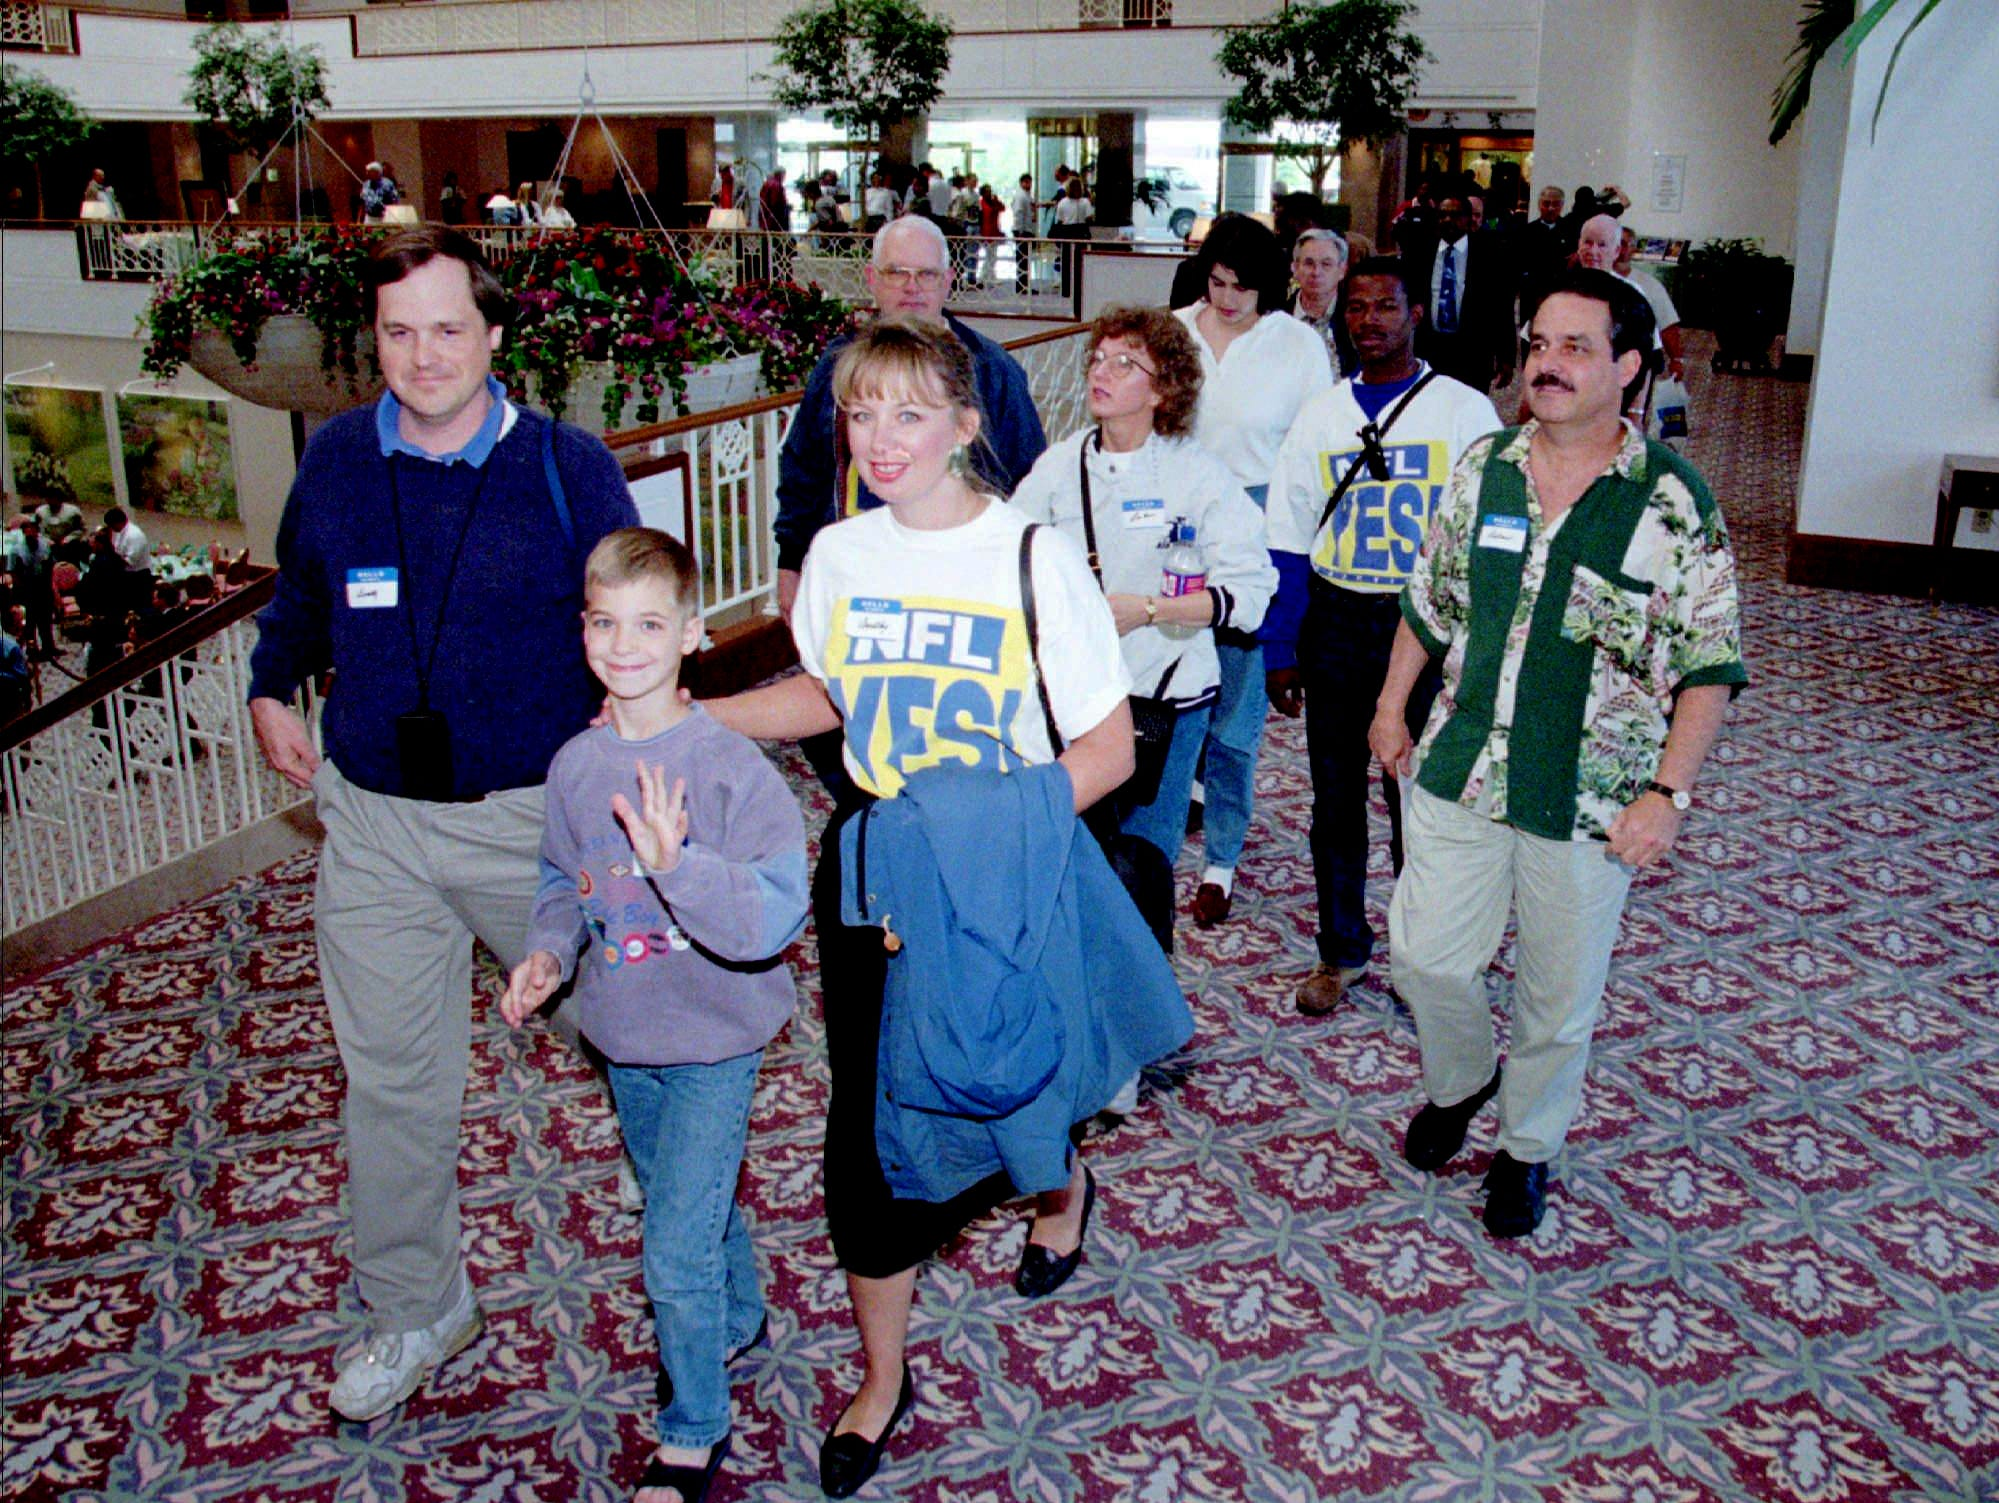 Tennesseans supporting the relocation of the Houston Oilers to Nashville arrive at an Atlanta hotel April 30, 1996 where NFL owners were meeting to vote on the move. The owners approved the move in a four and a half hour meeting.